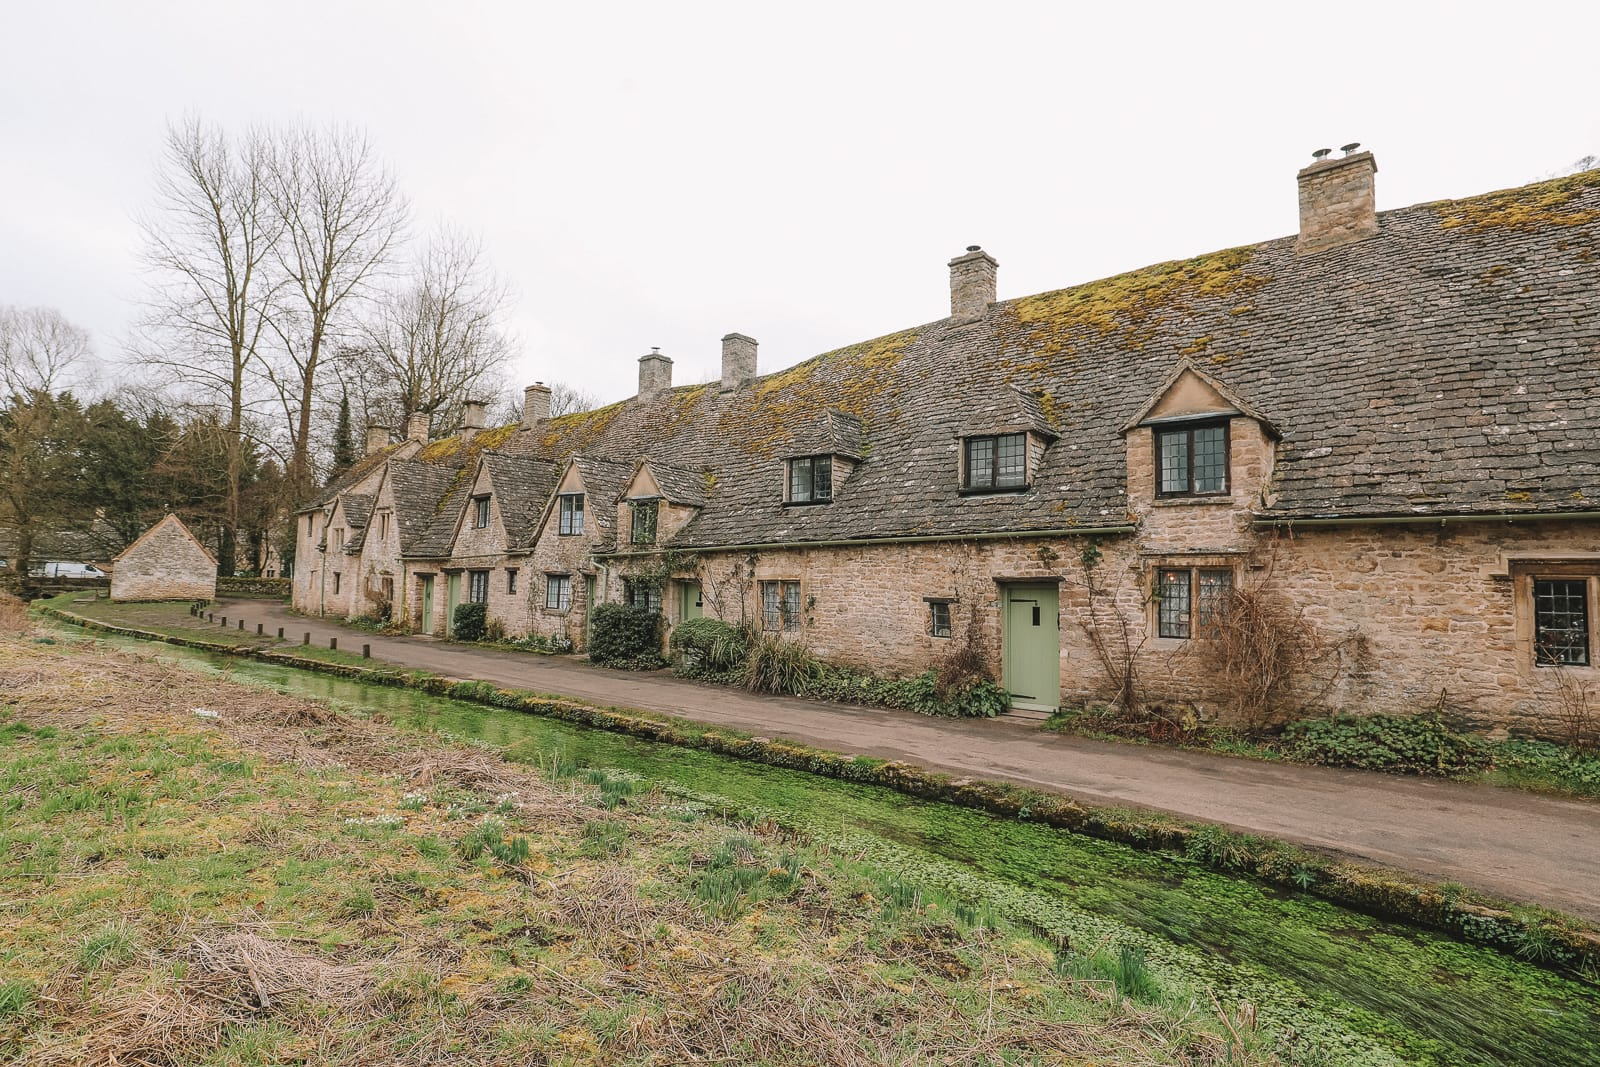 4 Villages And Towns You Have To Visit In The Cotswolds, England (6)